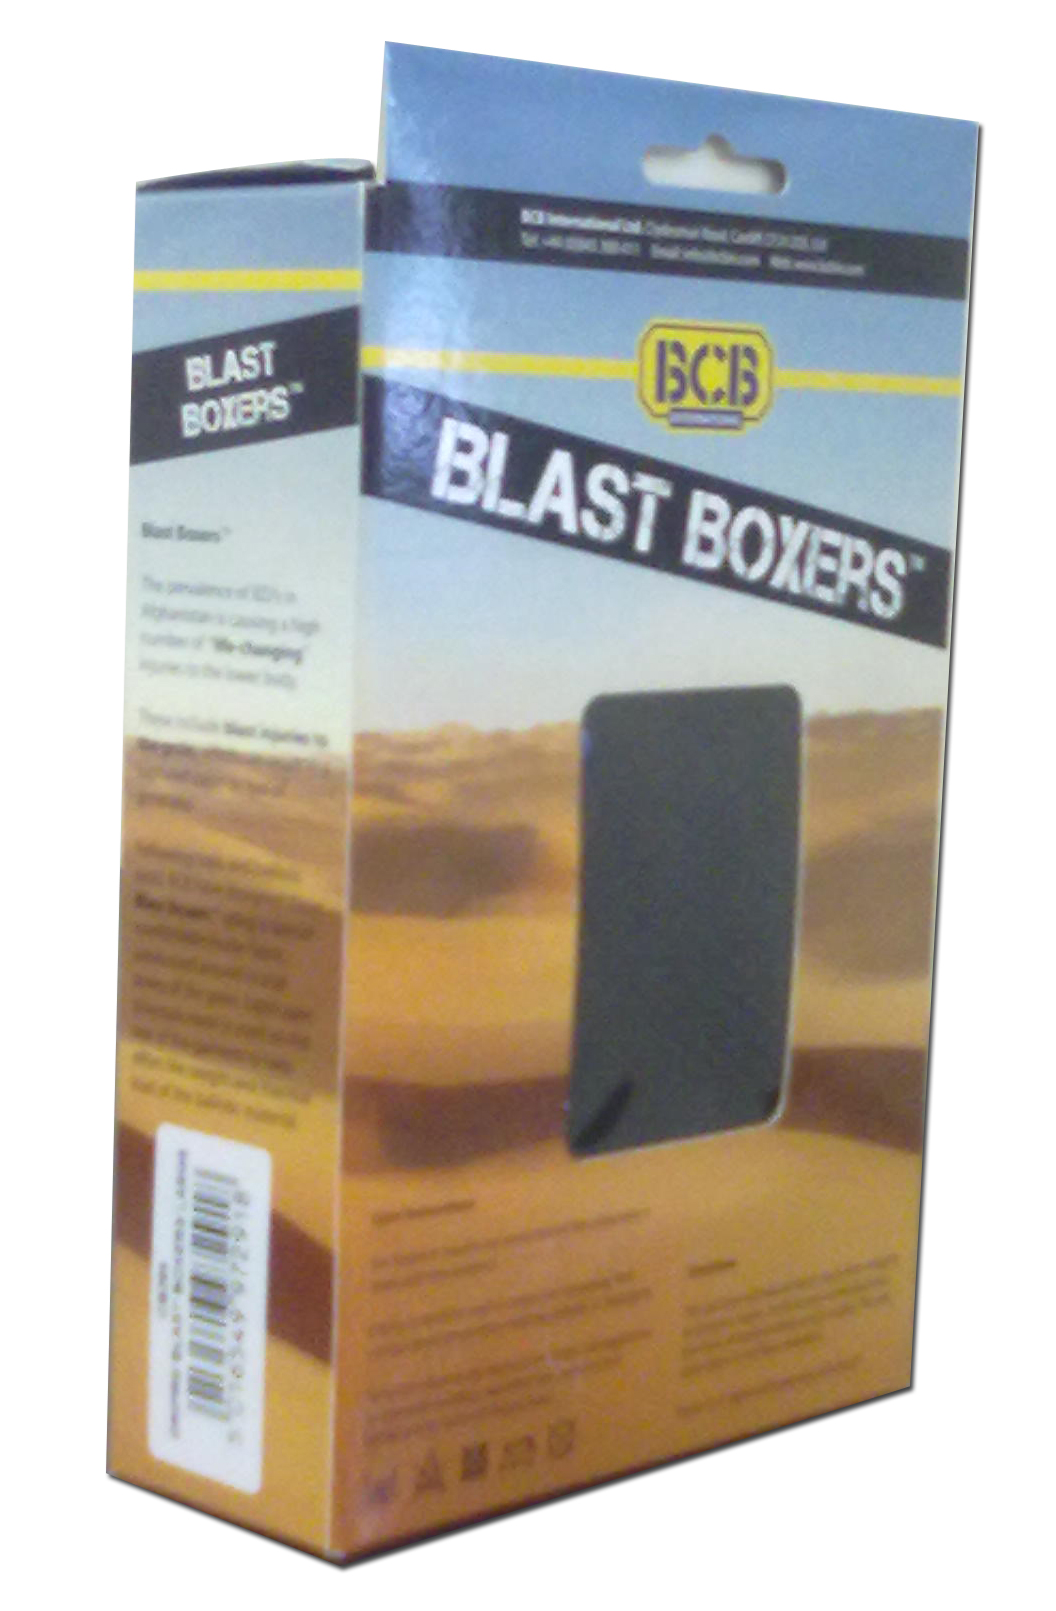 bcb-blast-boxer-package-back